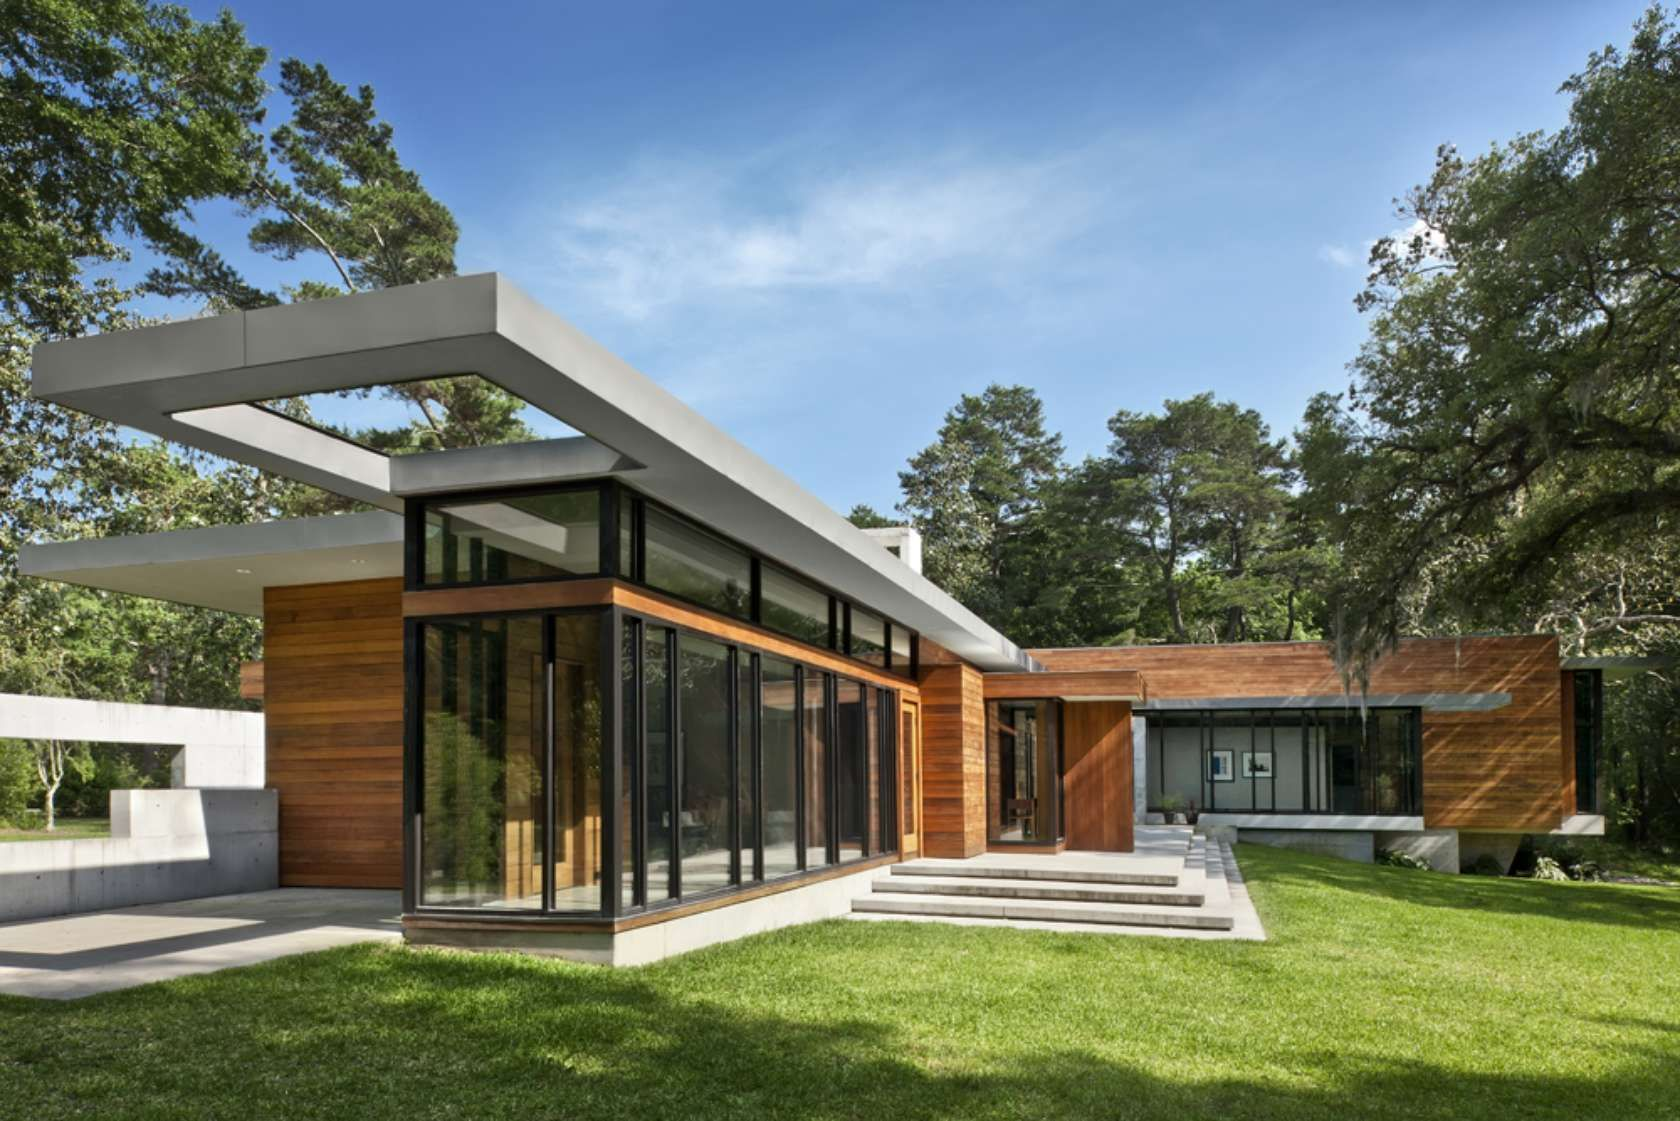 Modern Architectural Forms the project is a single-family house that explores the